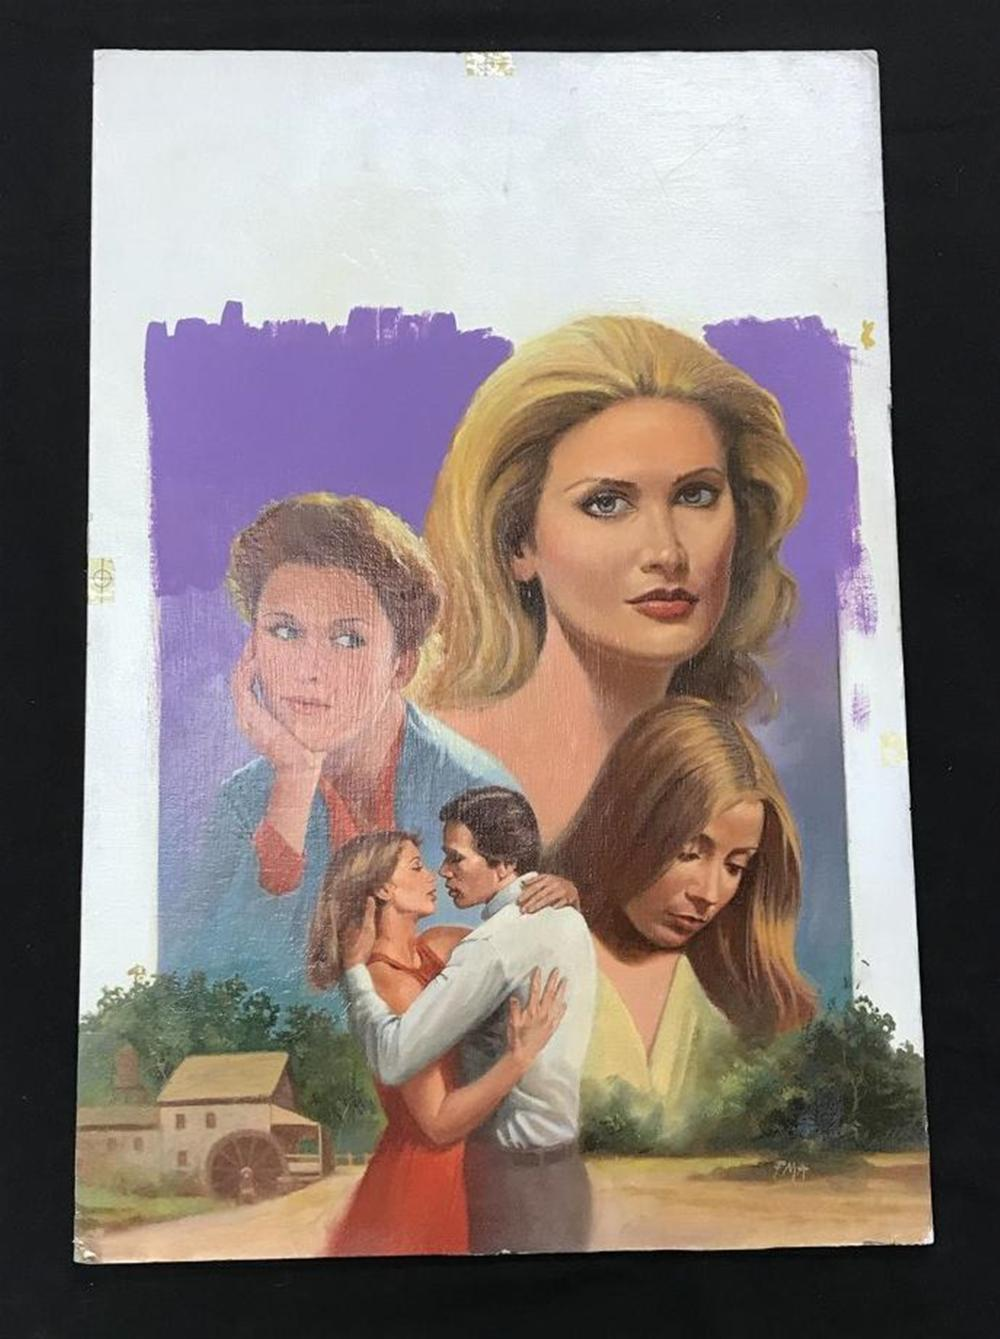 "ORIGINAL ROMANCE NOVEL COVER ILLUSTRATION TITLED BELIEVING IN GIANTS, OCTOBER 1978, ARTIST INITIALED FMA, ARTIST BOARD MEASURES 23 1/2"" X 1"".  FROM PRIVATE COLLECTION WE ARE SELLING."